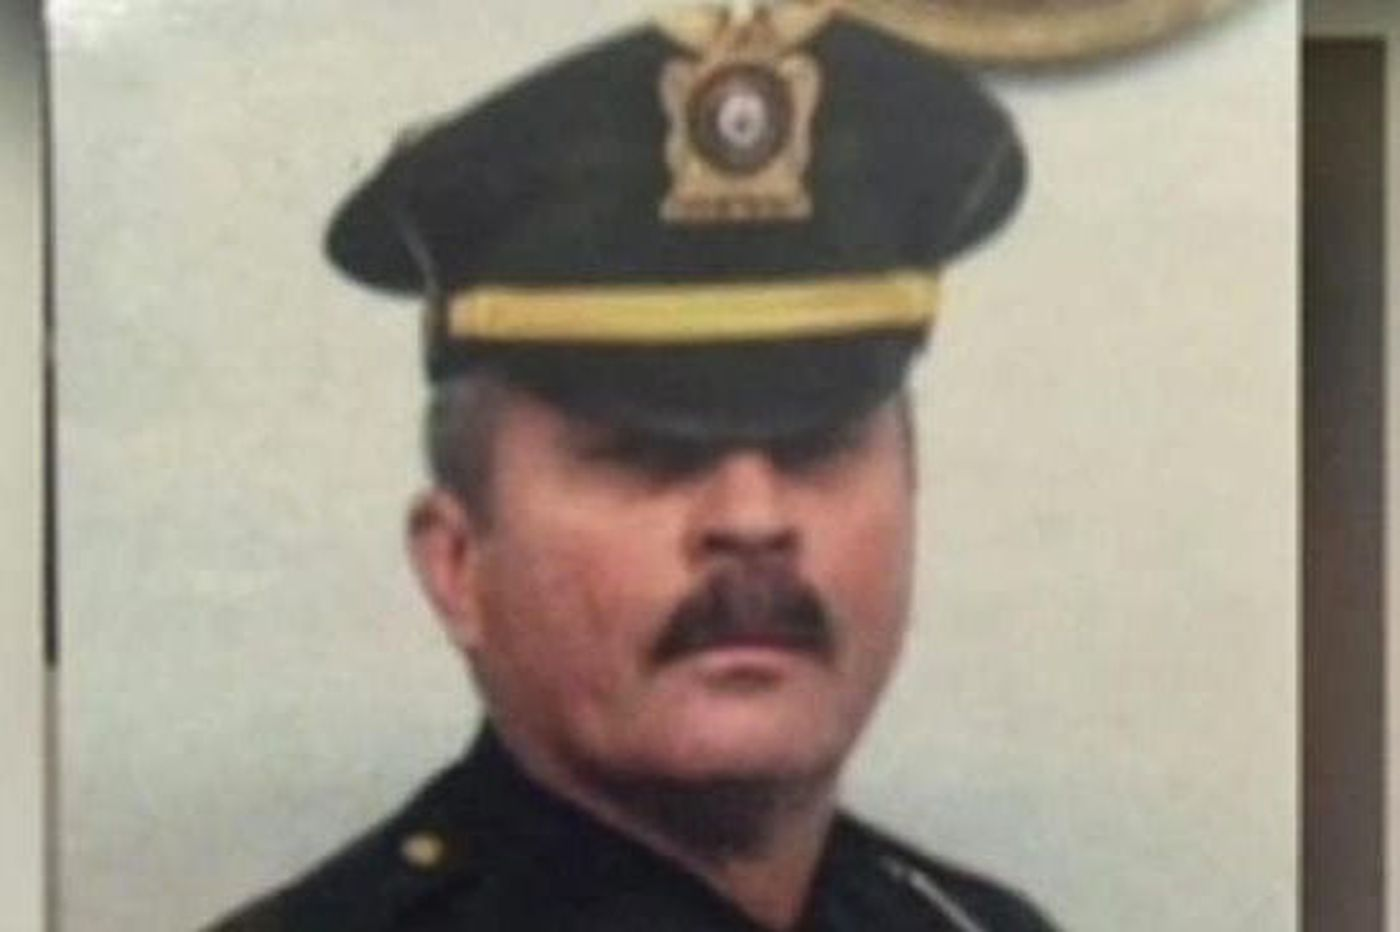 Trial continues for ex-Bordentown Police Chief Frank Nucera Jr., accused of hate-crime assault